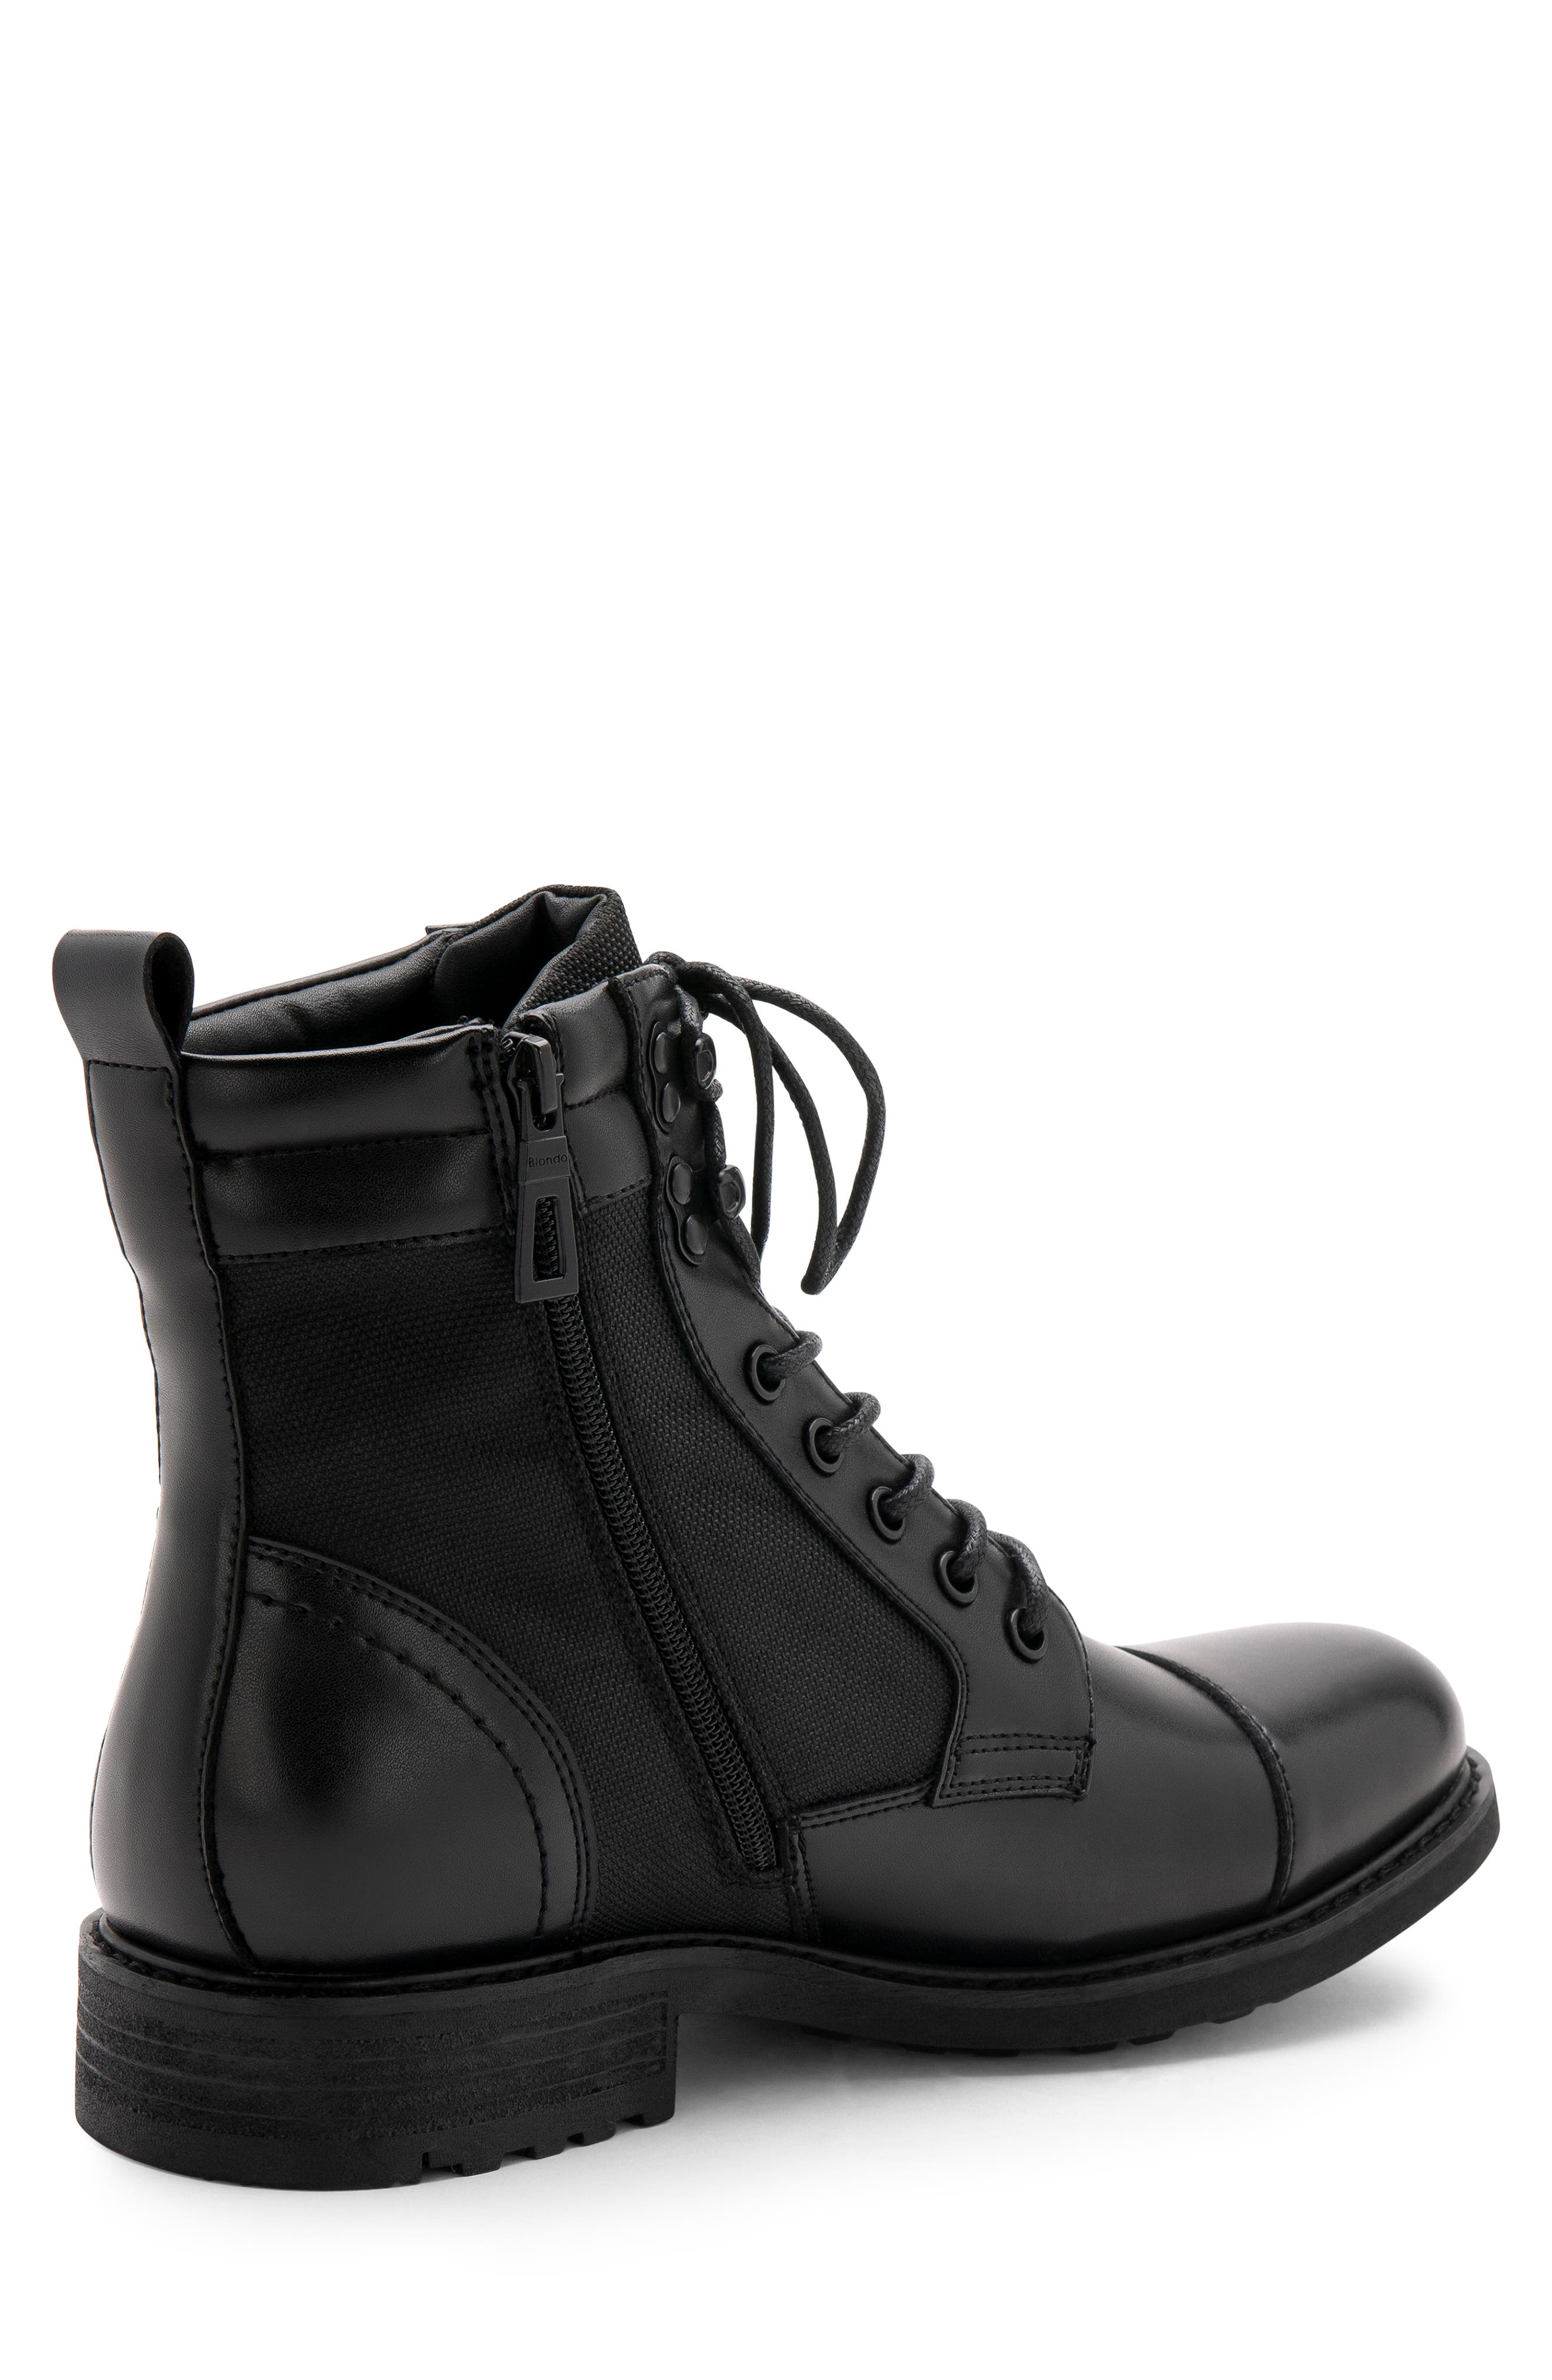 Paxton Waterproof Cap Toe Boot,                             Alternate thumbnail 7, color,                             BLACK LEATHER